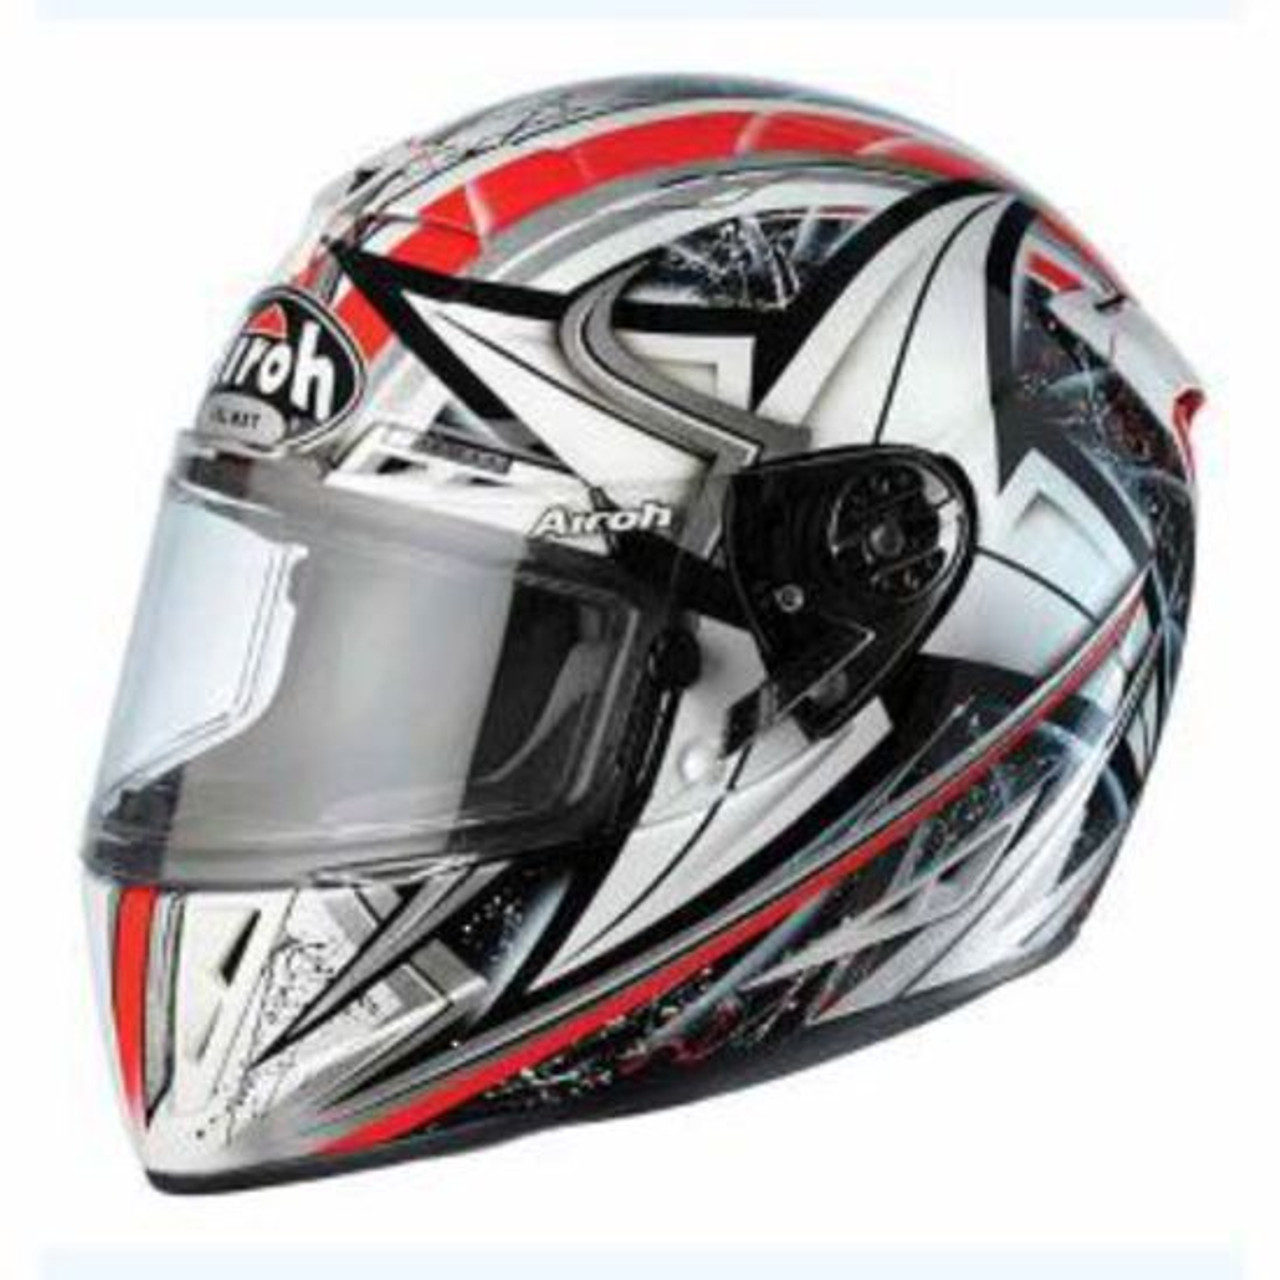 Airoh GP Full Face Helmet - Winder, Top Spec Race,  (Red) GPW55 XL 61cm - CLEARANCE SALE!